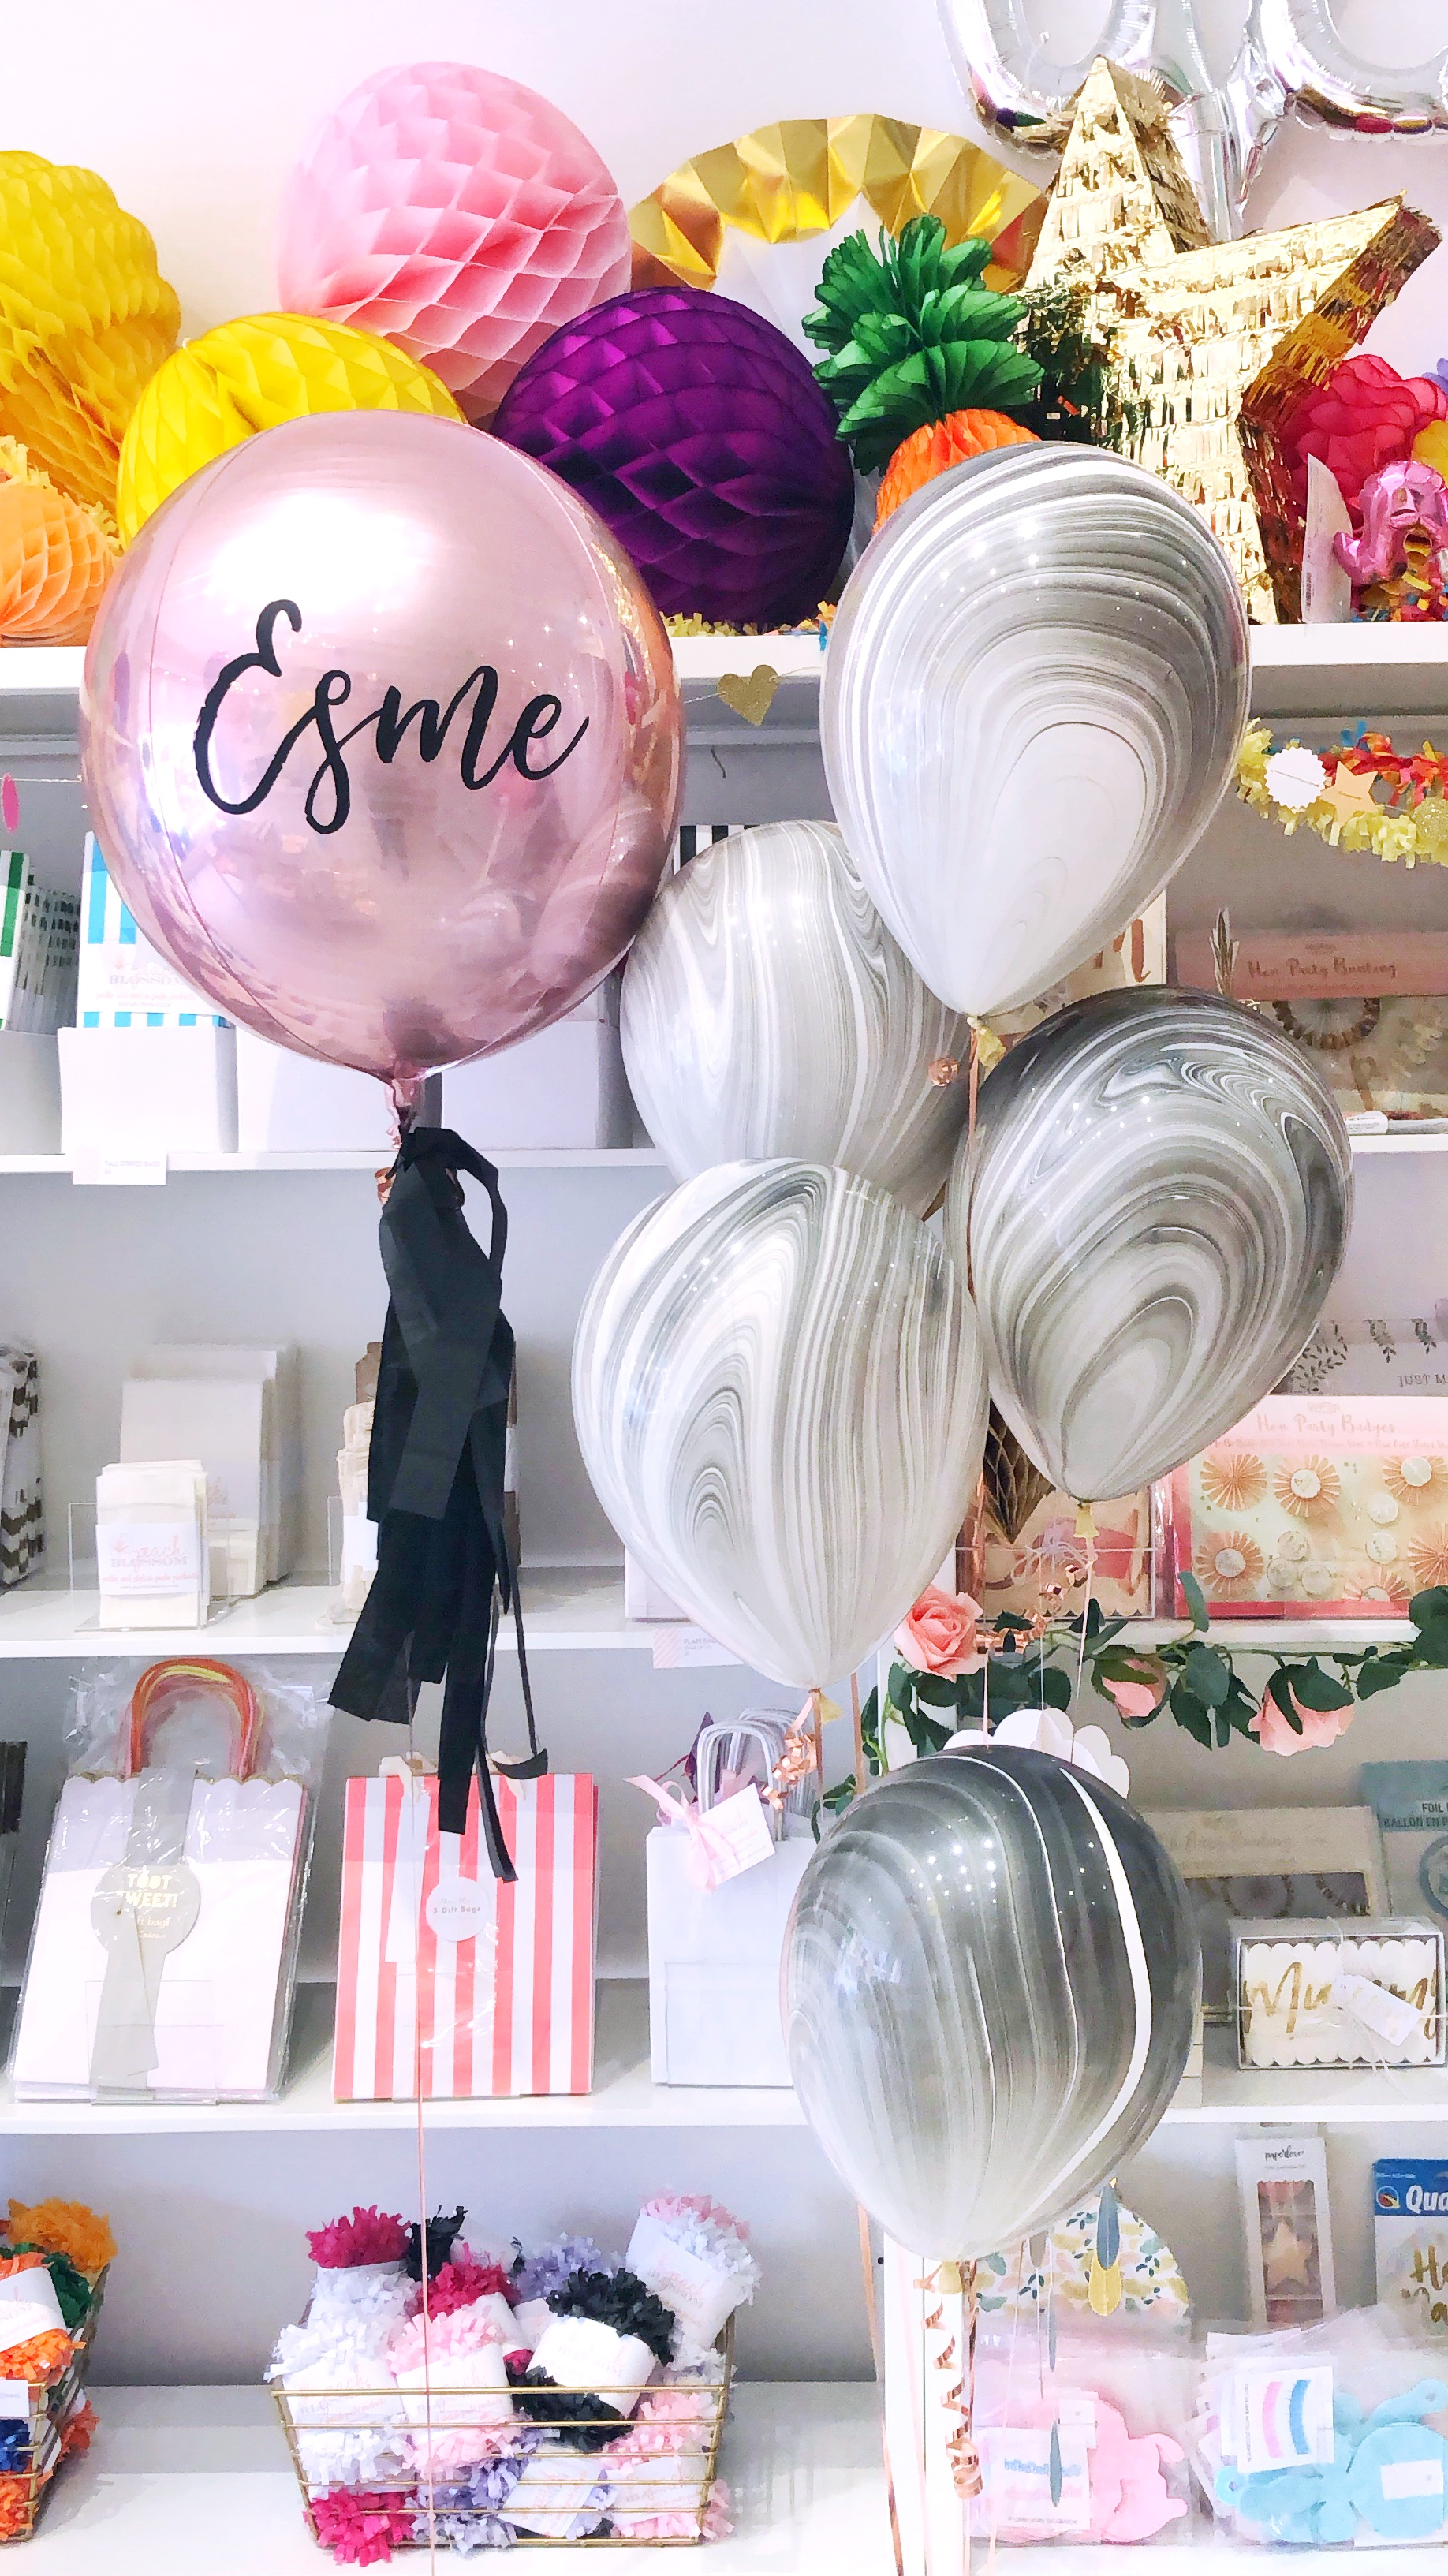 rose-gold-and-black-marble-balloon.jpg